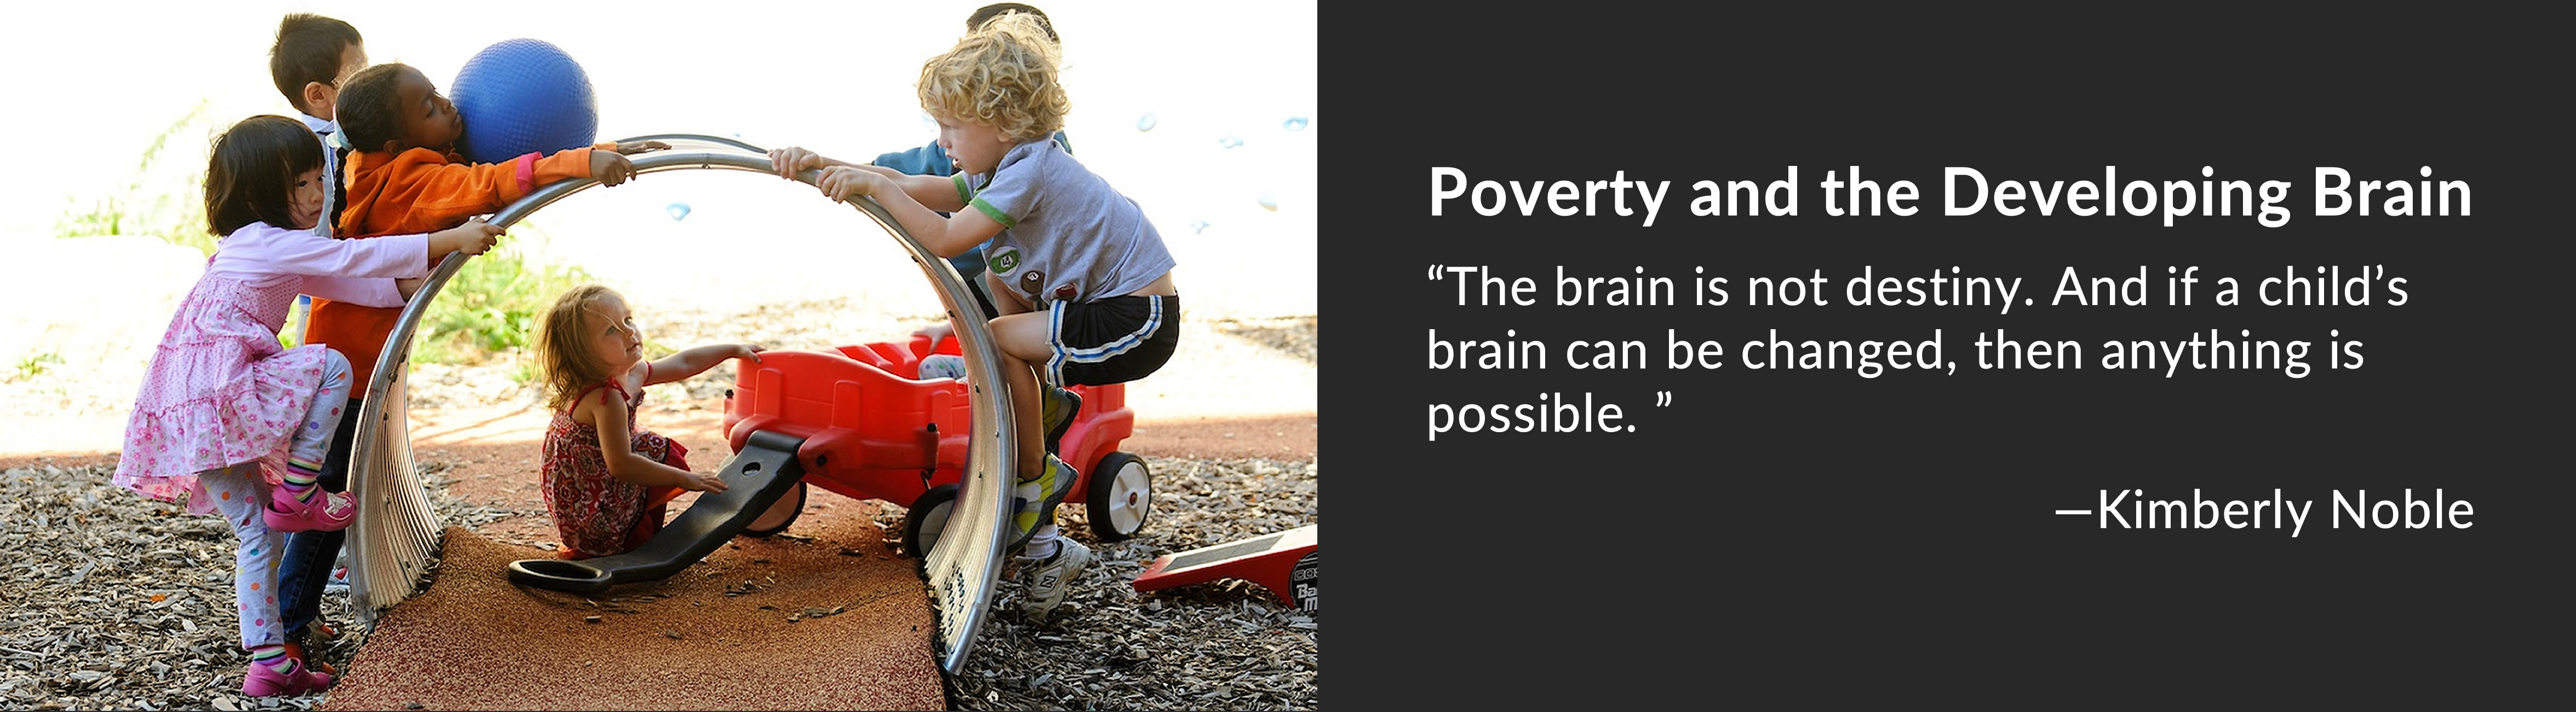 """Poverty and the Developing Brain """"The brain is not destiny. And if a child's brain can be changed, then anything is possible. """" —Kimberly Noble"""